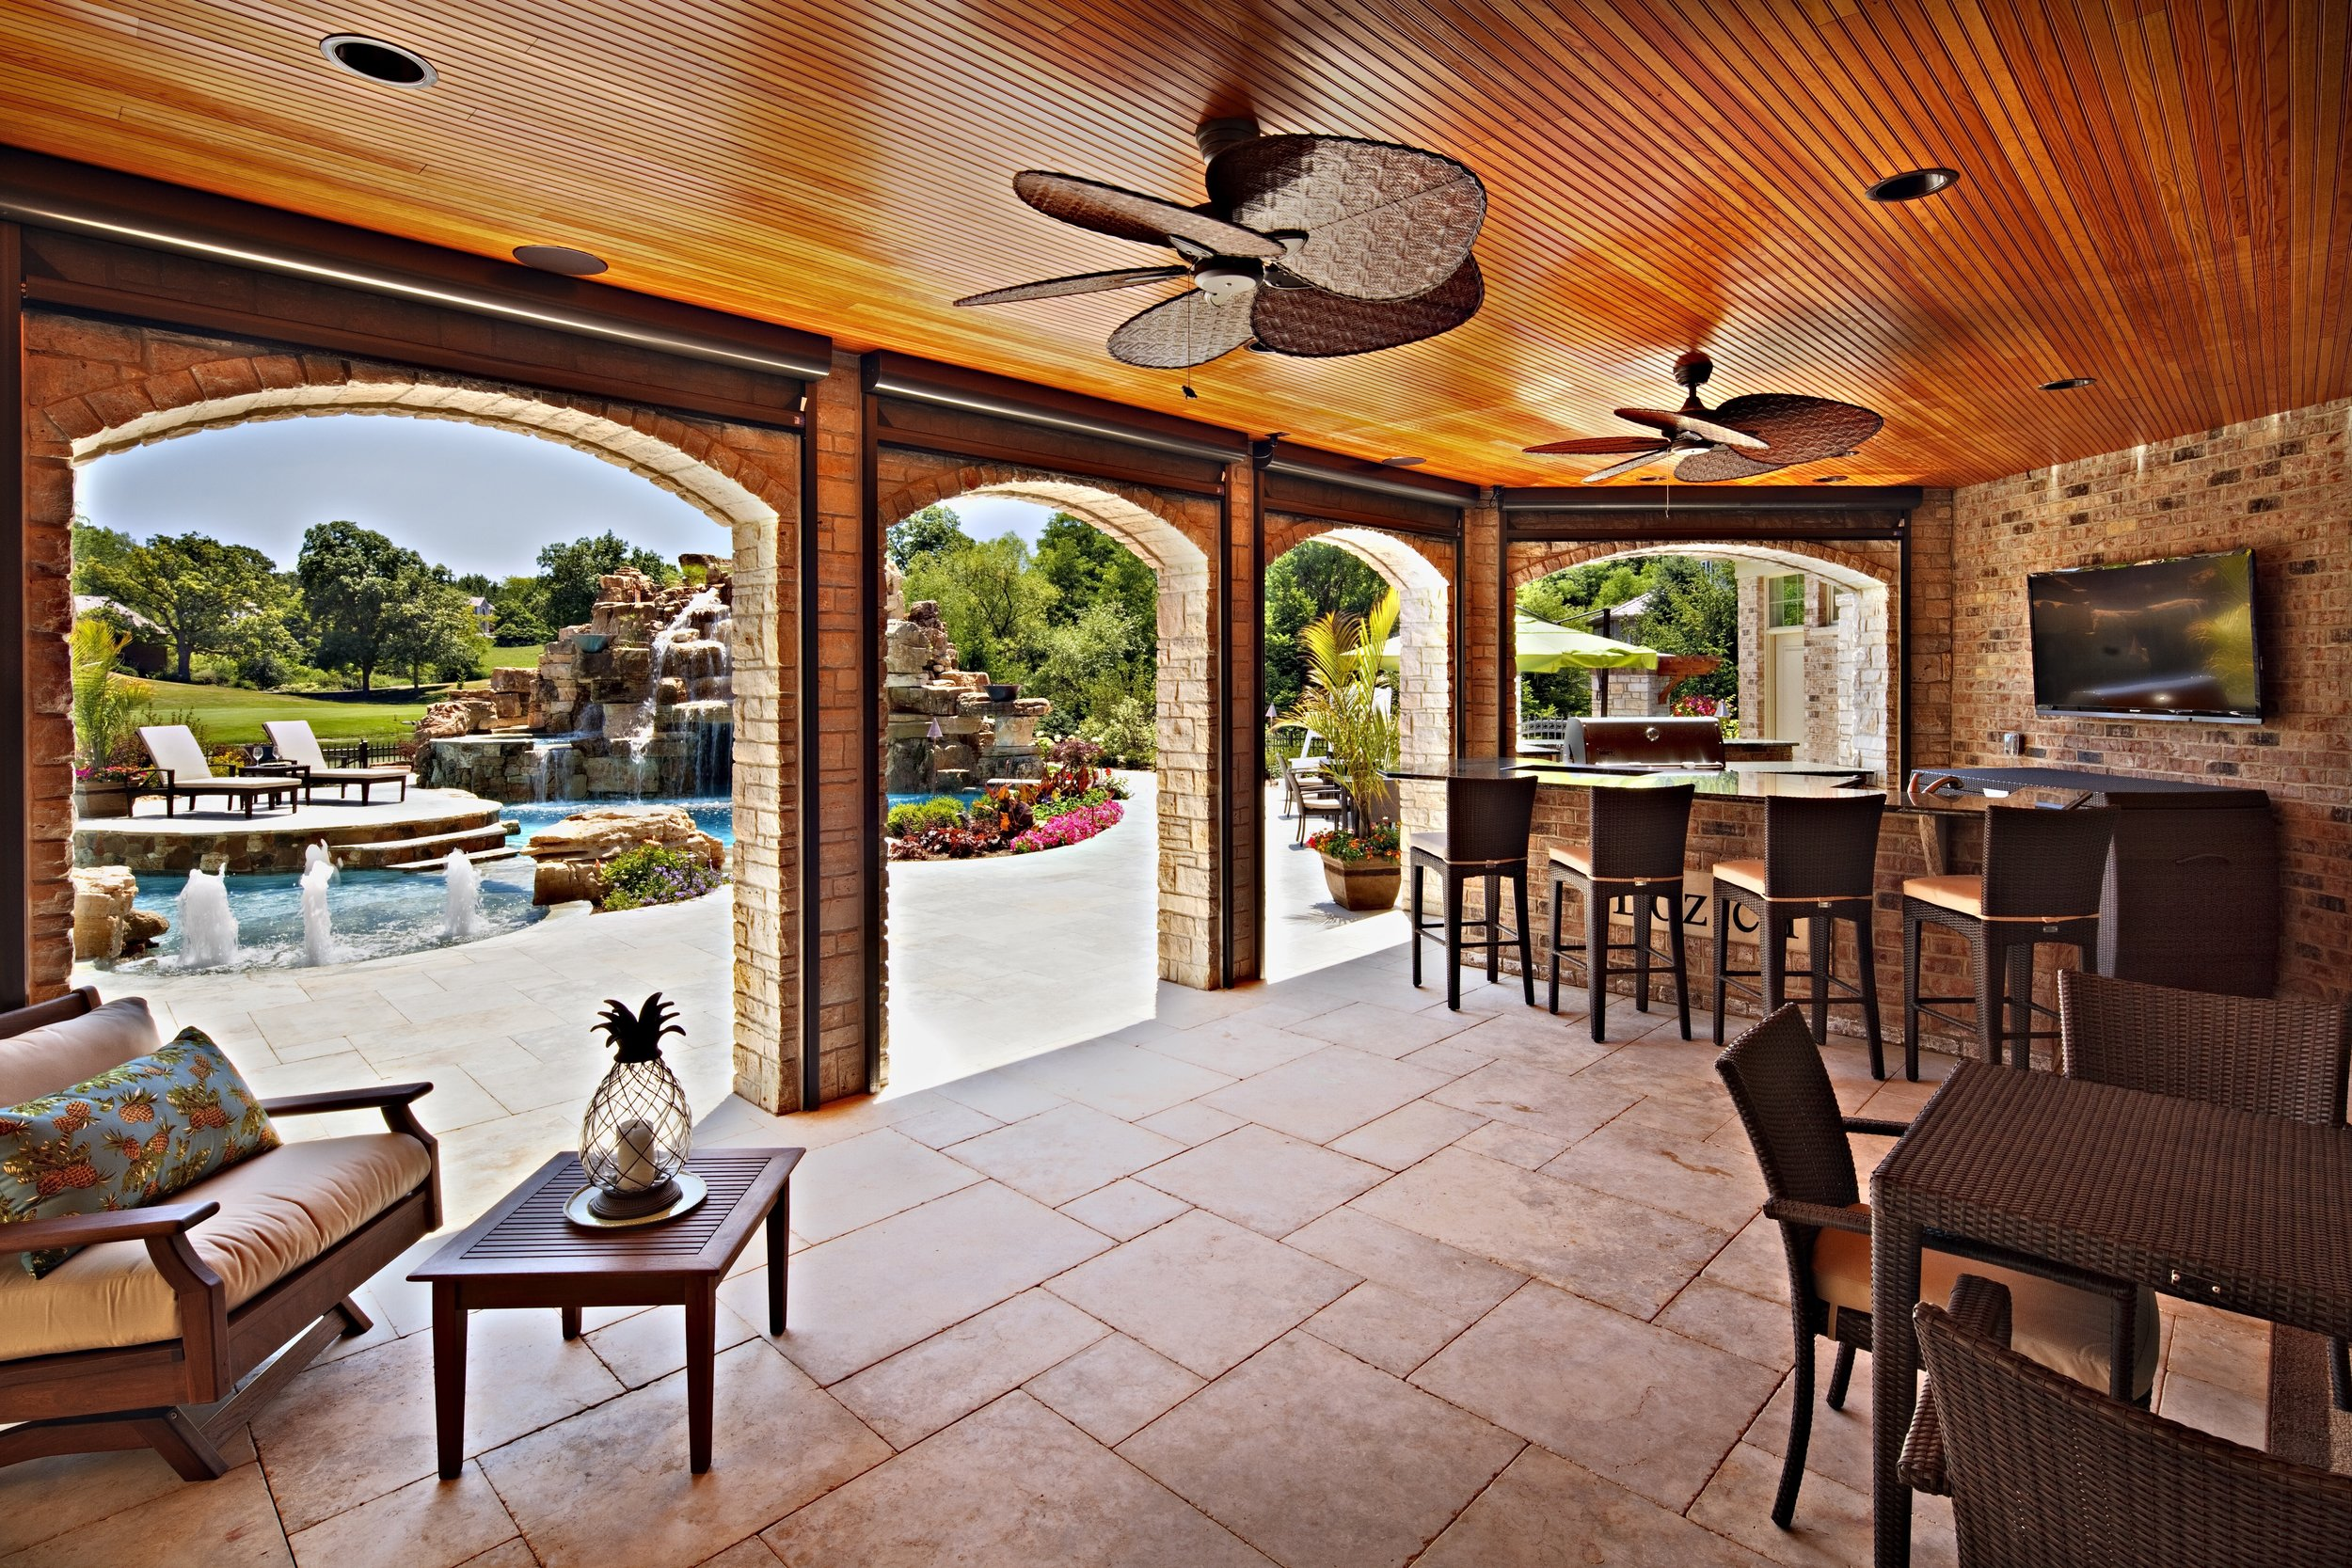 LUXURY WALK OUT BASEMENT WITH FULL OUTDOOR KITCHEN AND CUSTOM POOL IN OAK BROOK ILLINOIS BY SOUTHAMPTON